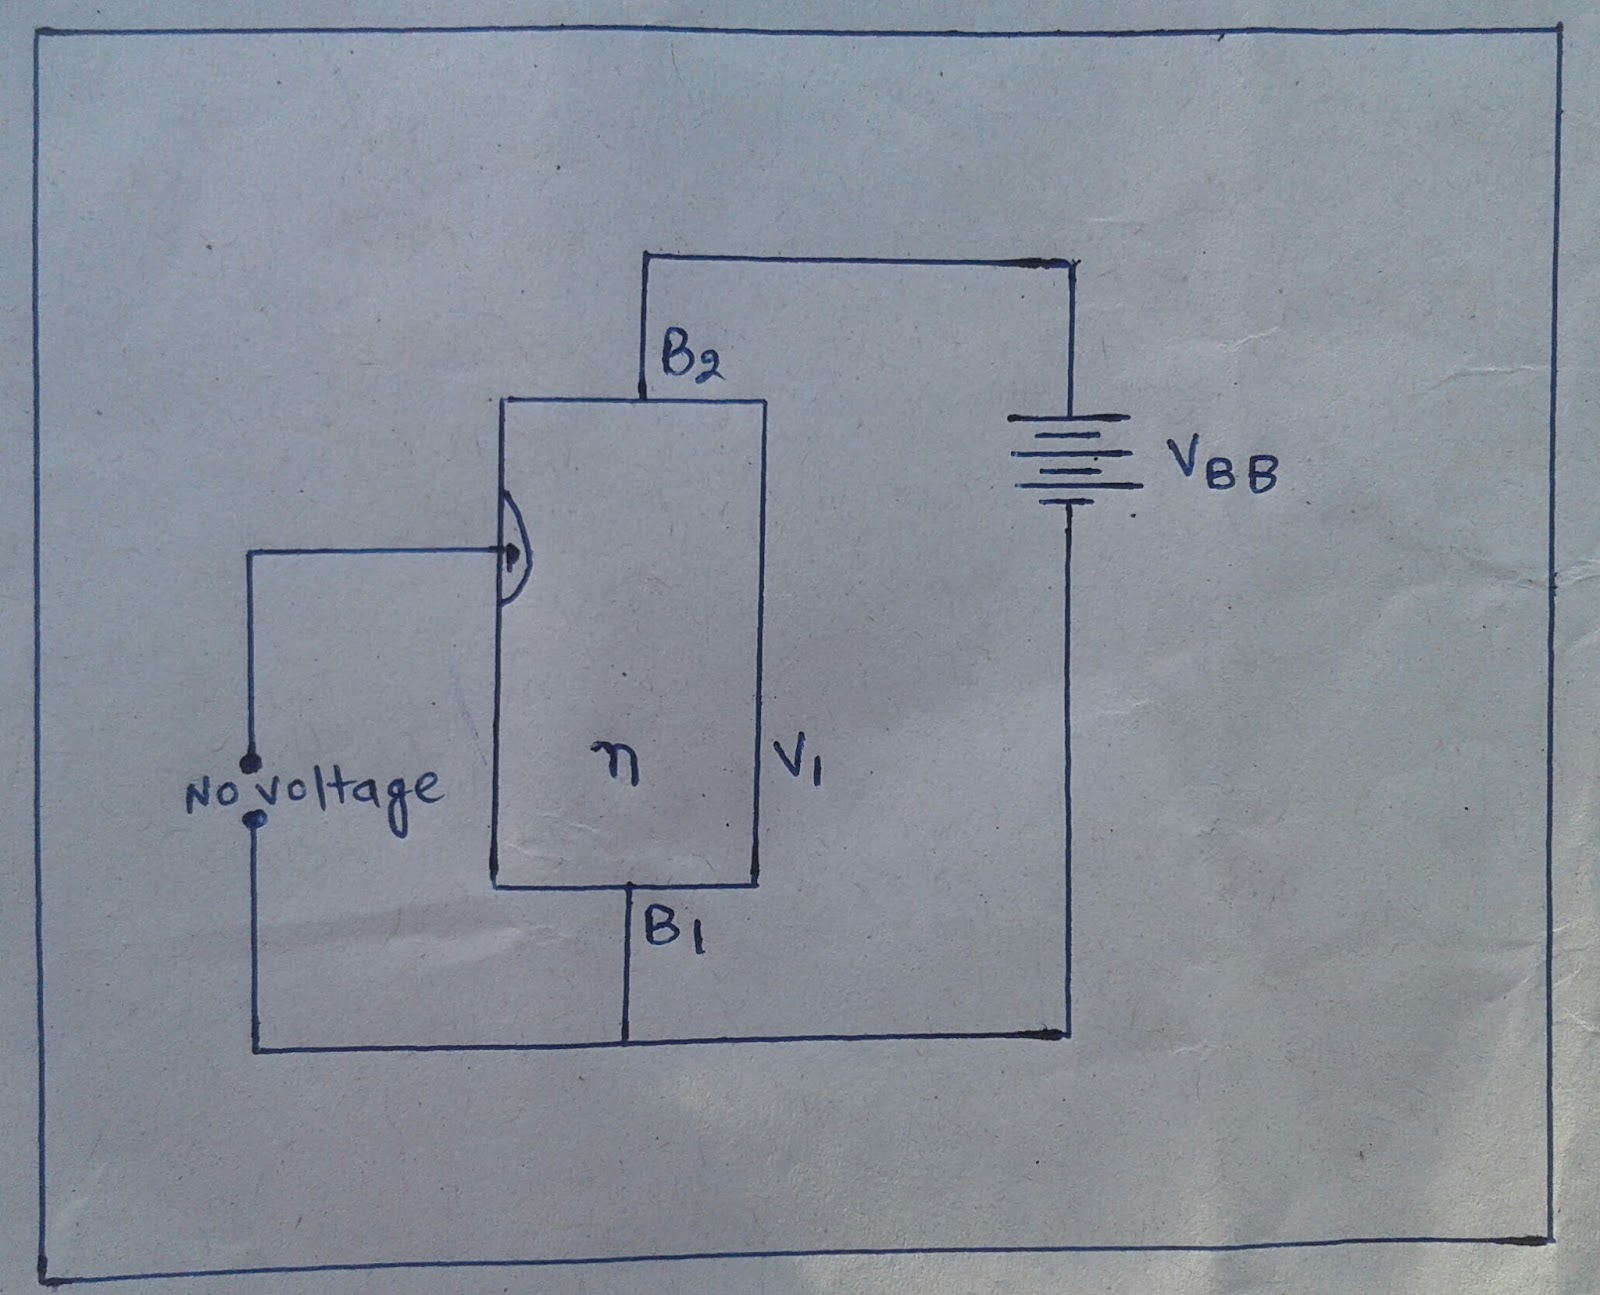 Physics Maths Lover Sawtooth Wave Generator Circuit Using Ujt Now The Voltage V1 Between Emitter And B1 Reverse Biases P N Junction Hence Current Is Cut Offhowever A Small Flows From B2 To